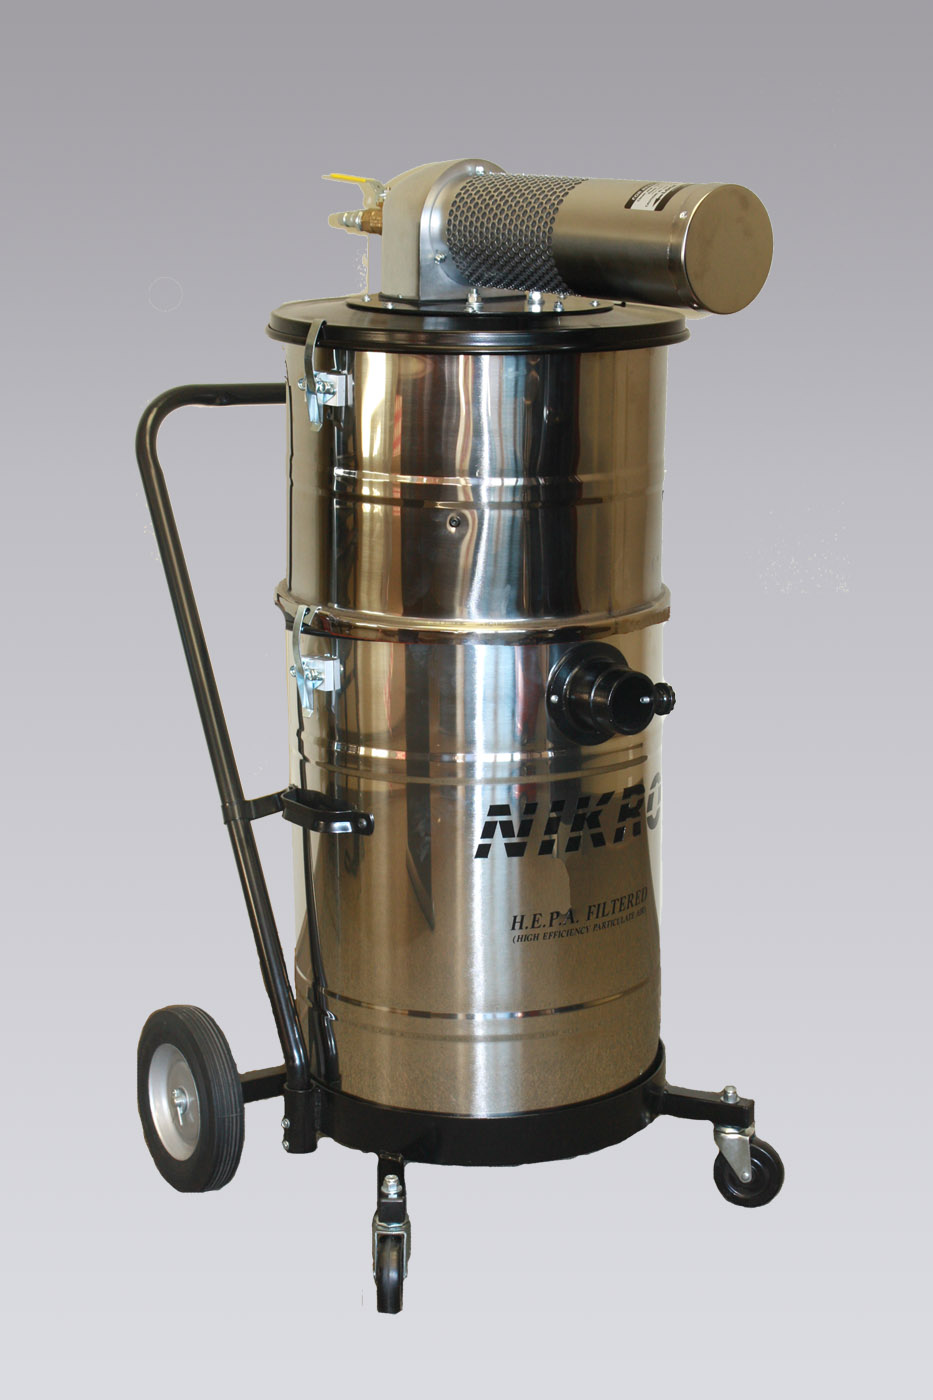 AHW15150-S - Stainless Steel Pneumatic Vacuums/ Compressed Air Powered Vacuums - NIKRO Industries, Inc.